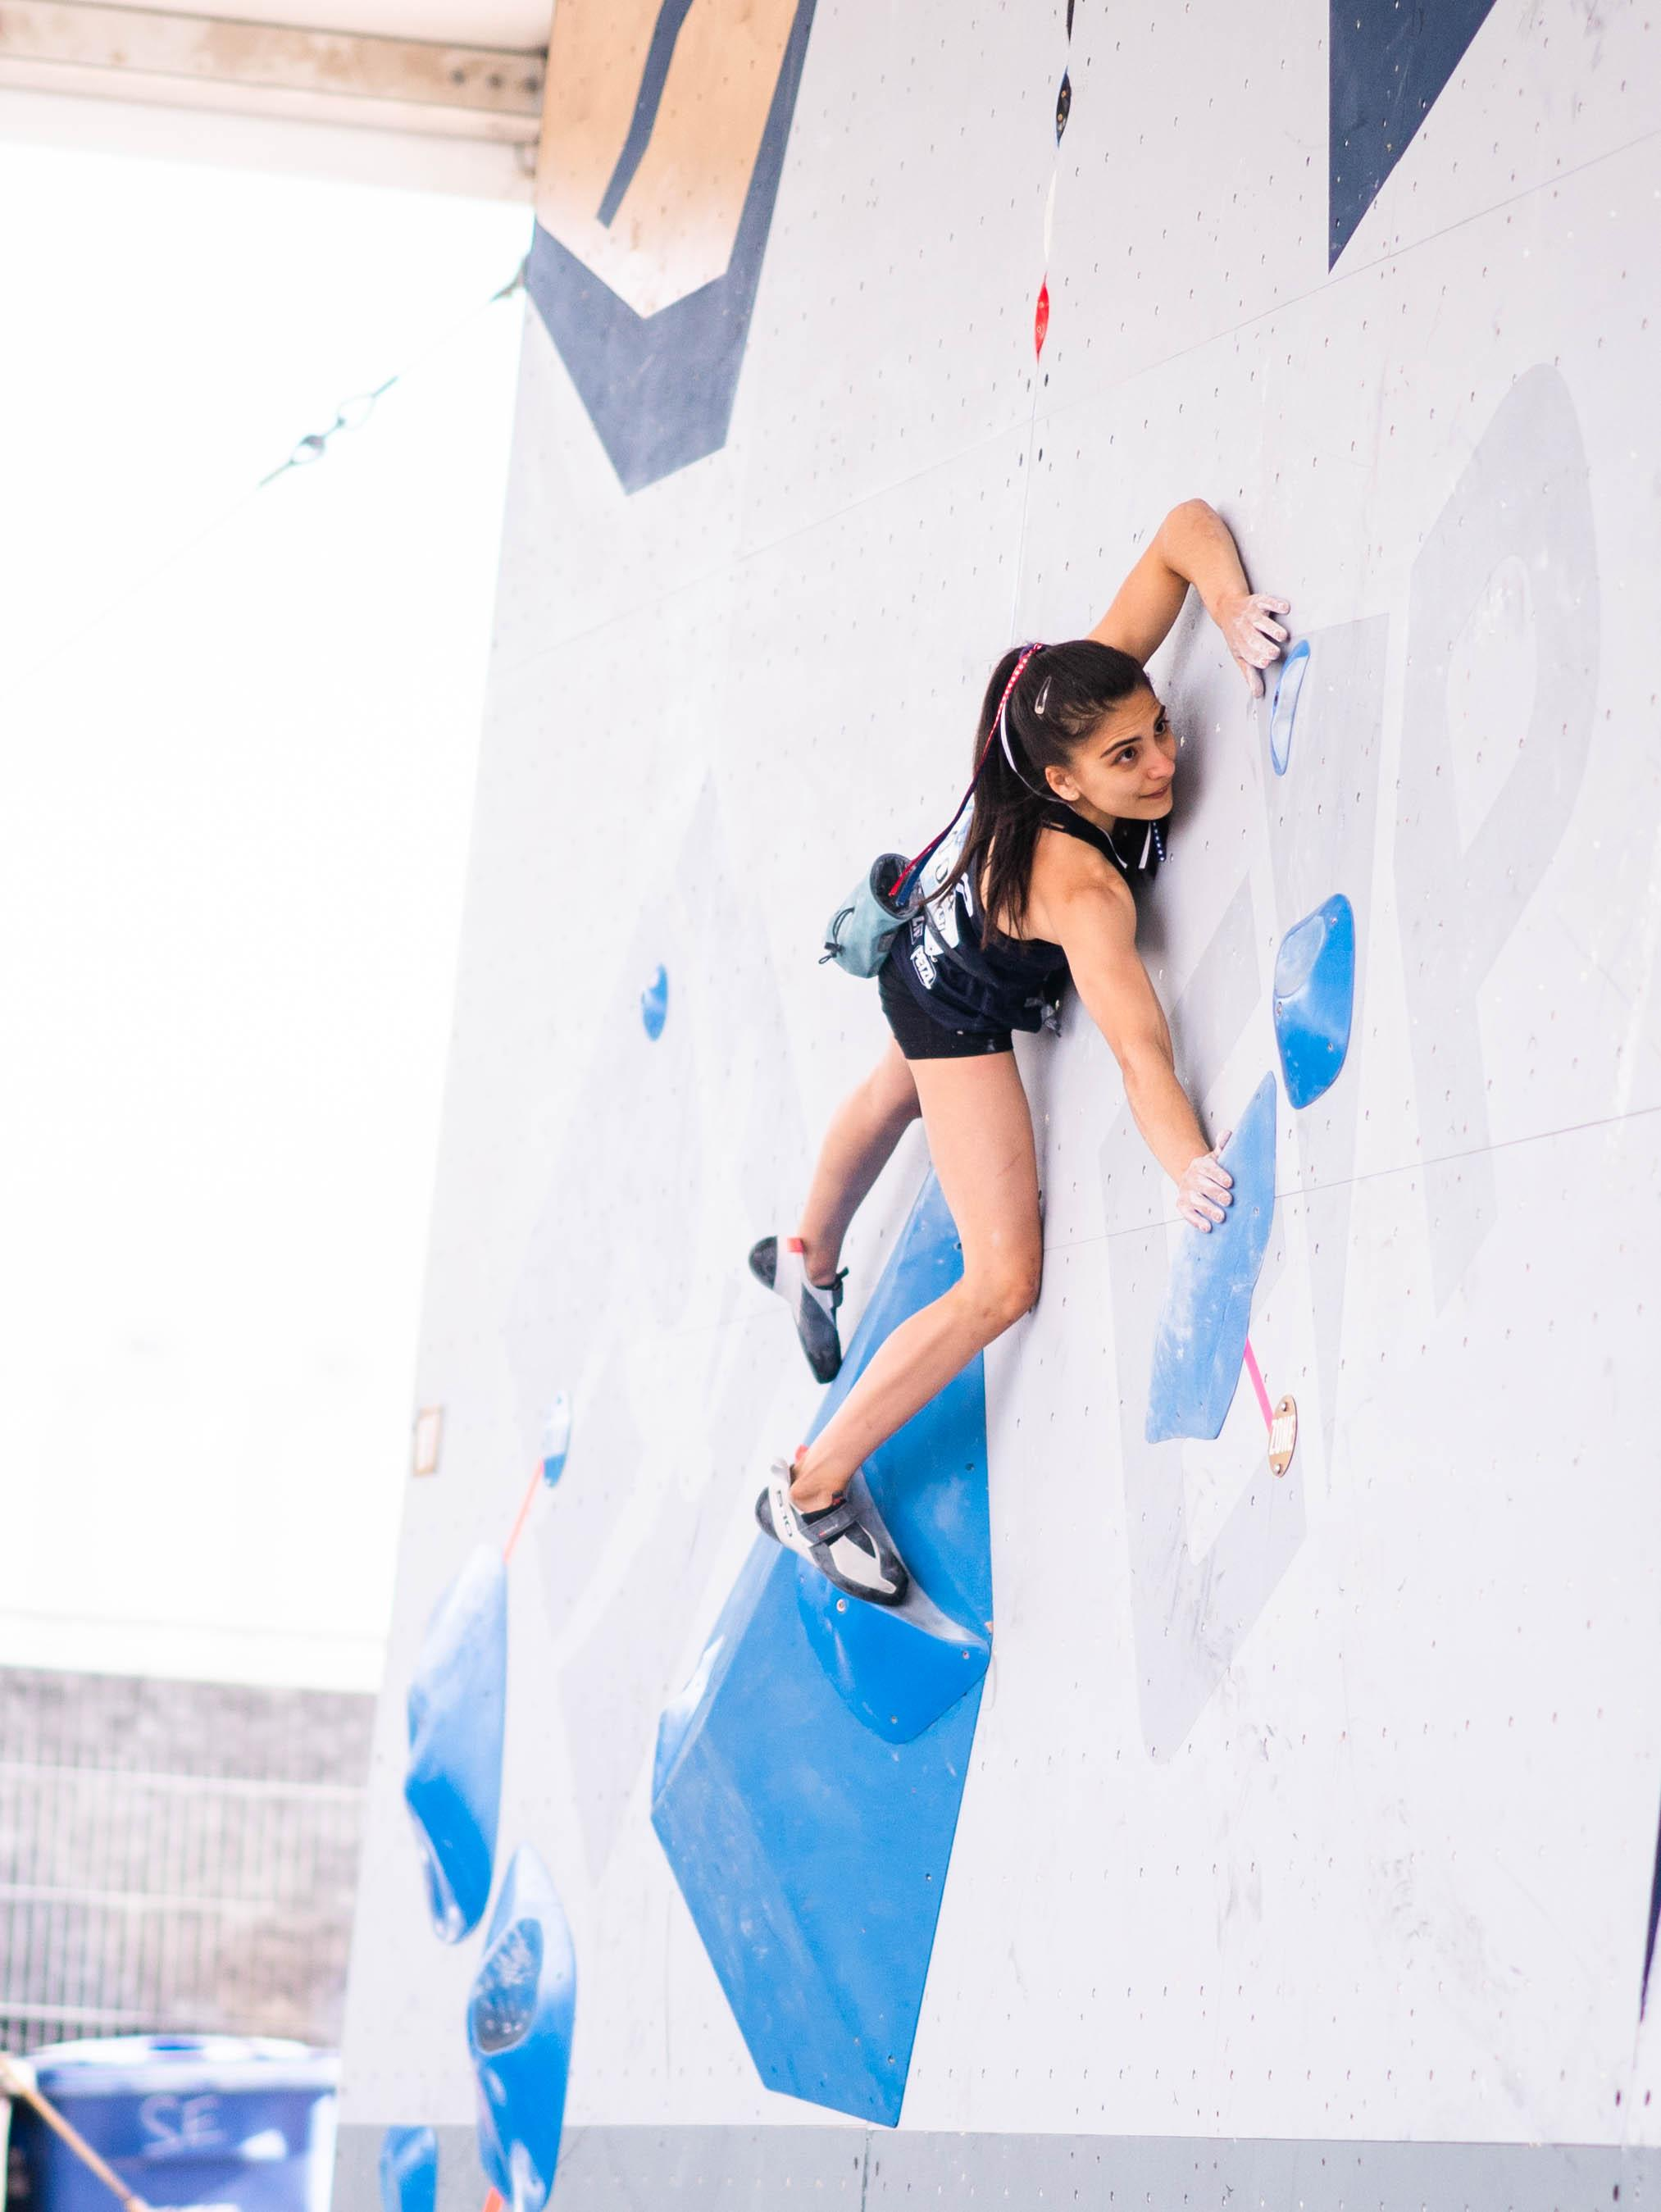 210522 IFSC News Grossman and Fujii lead the way into the womens and mens finals in Salt Lake City